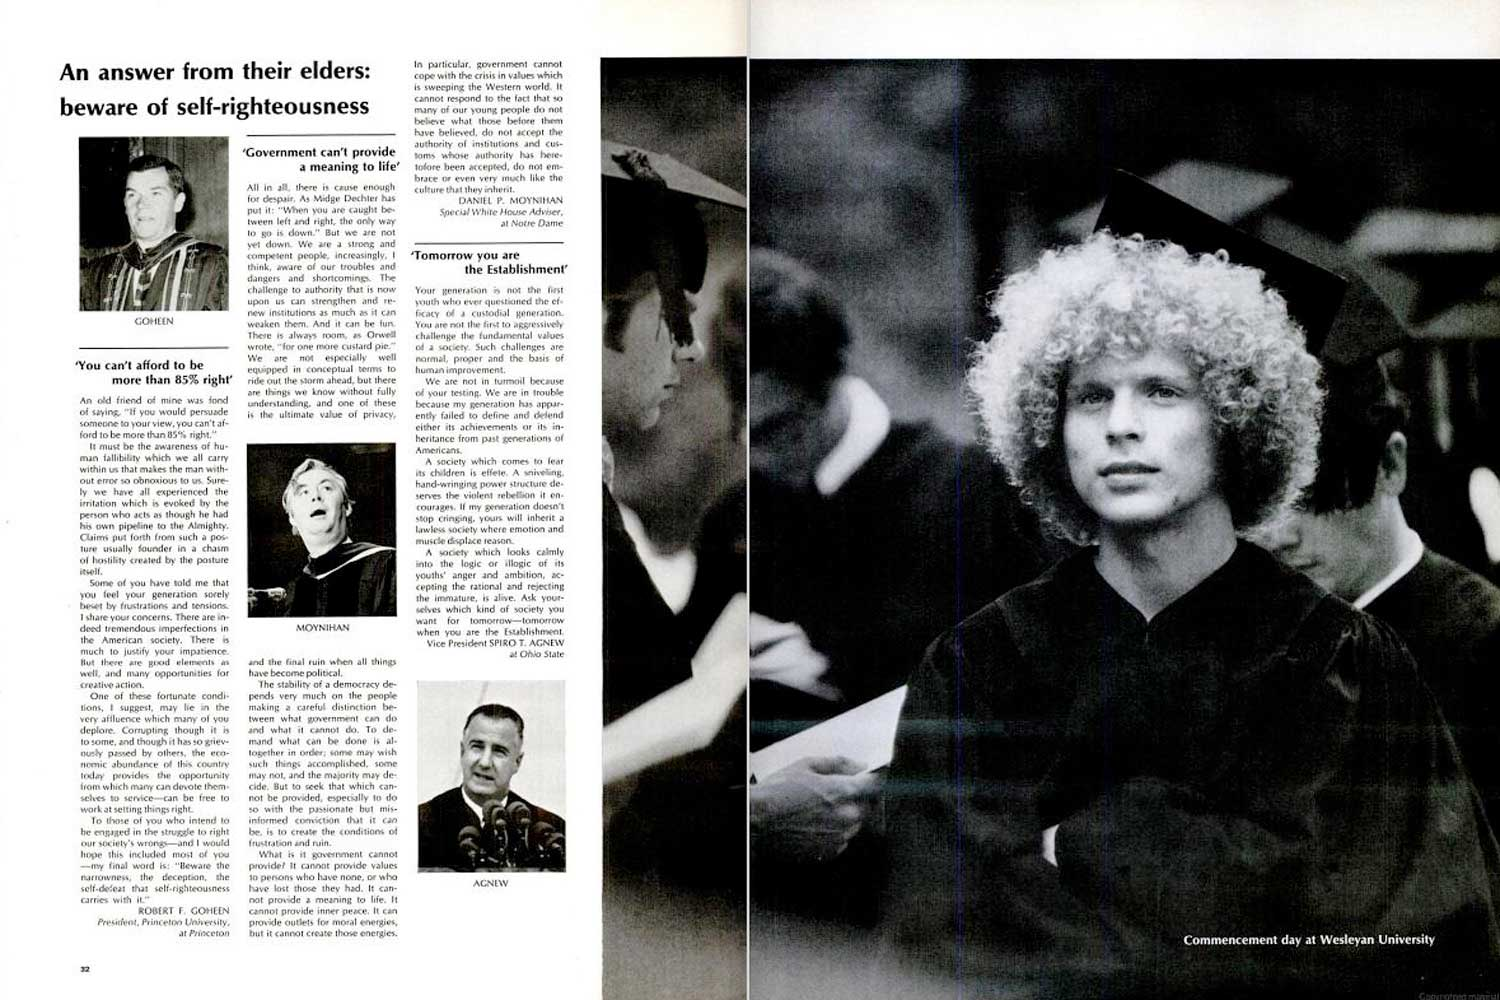 """LIFE magazine, June 20, 1969, """"Class of '69"""" page spreads. (Best viewed using """"Full Screen"""" option, at right.)"""